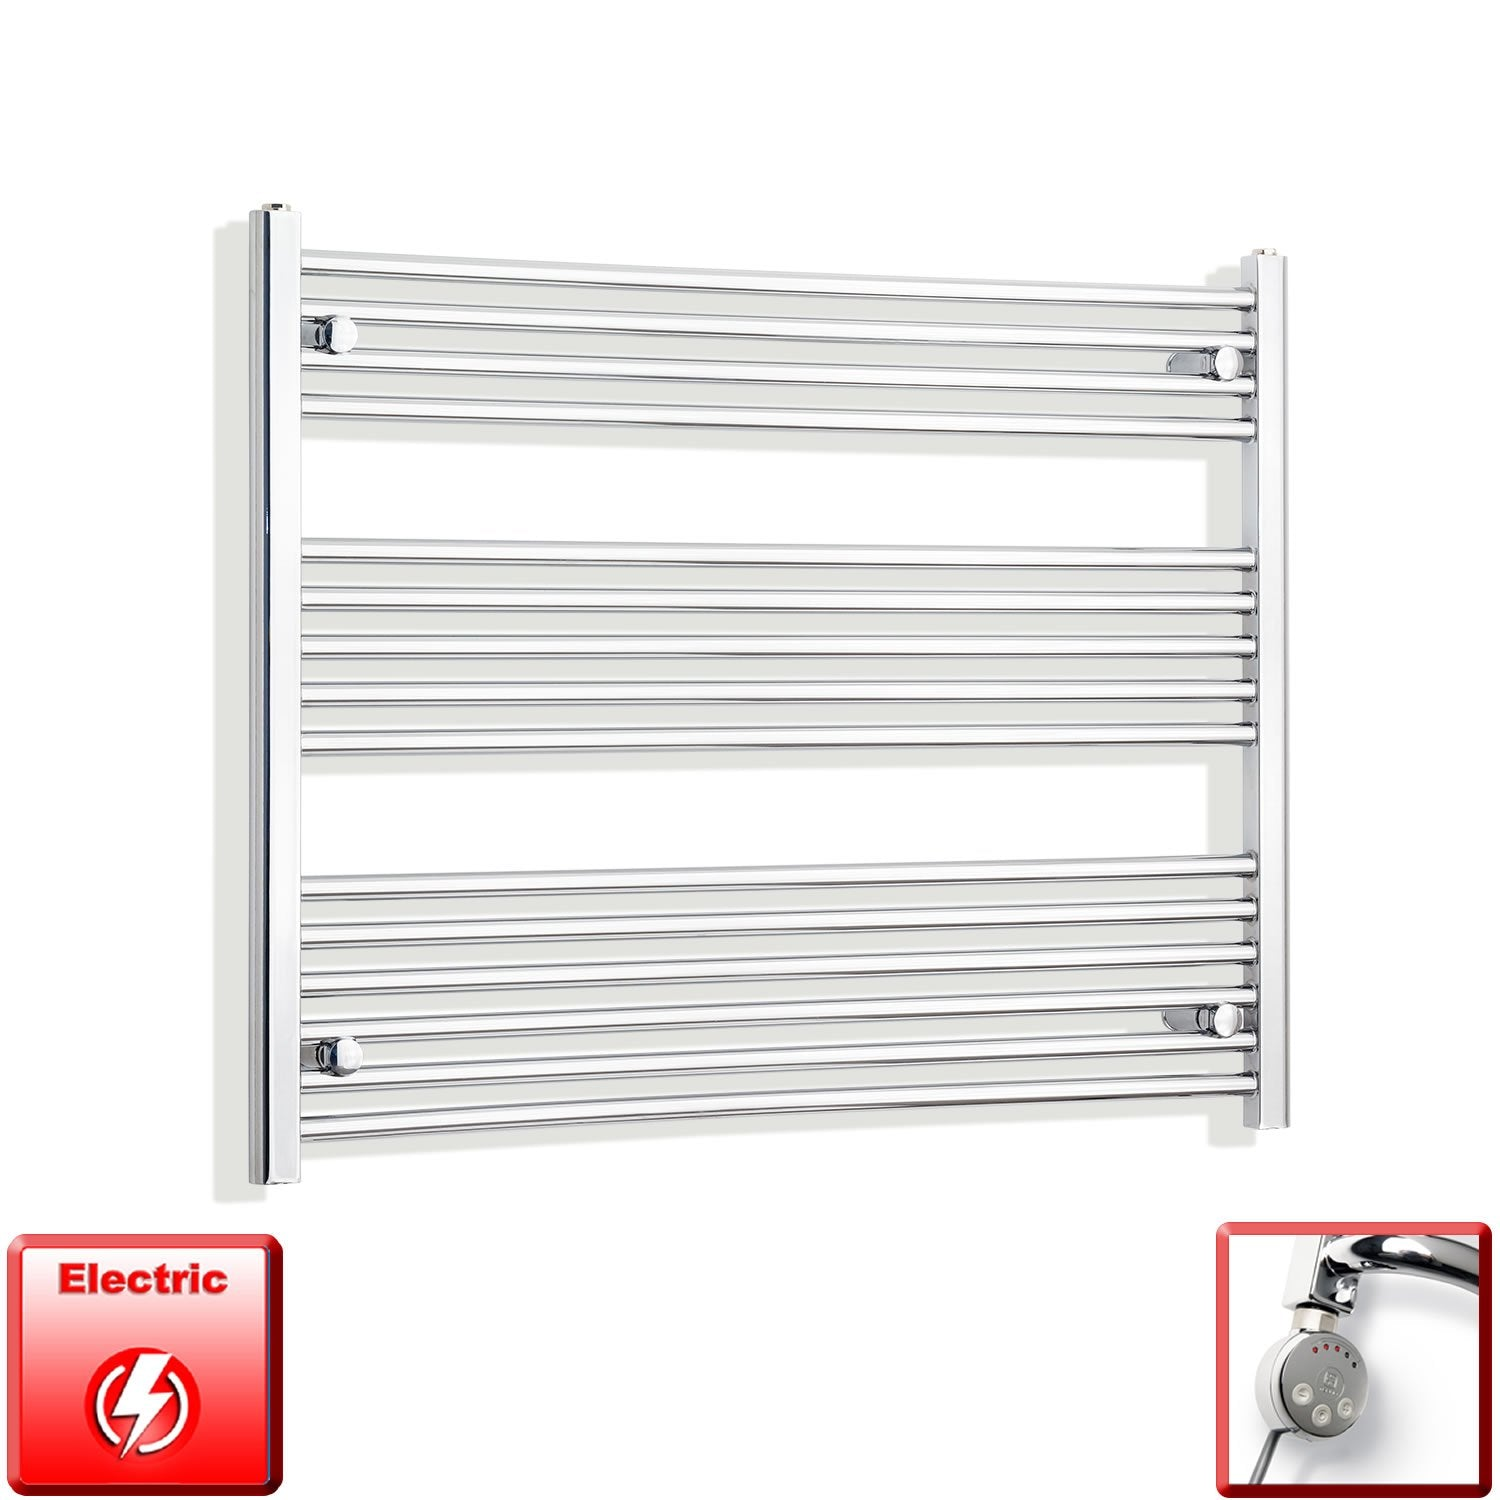 1000mm Wide 800mm High Flat Chrome Pre-Filled Electric Heated Towel Rail Radiator HTR,MEG Thermostatic Element